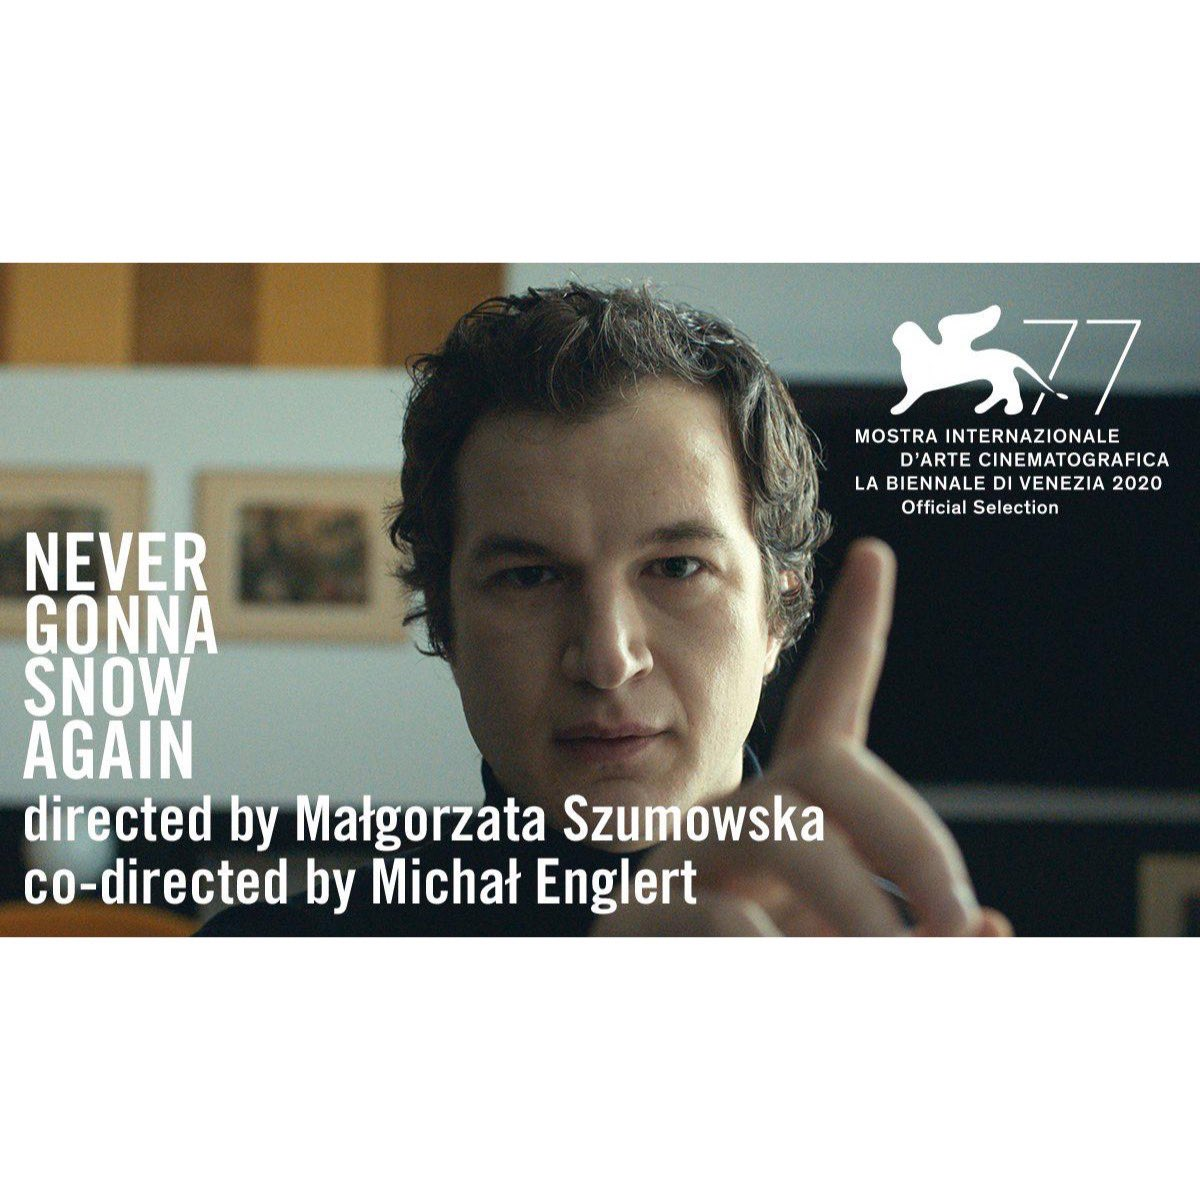 We're so excited to share that 'Never Gonna Snow Again' has be announced in competition at this years @biennale_cinema! @AlecUtgoff plays leading role Zenia & the film is directed by Malgorzata Szumowska & Michal Englert🎥 #venice70filmfestival #venezia70 @THR